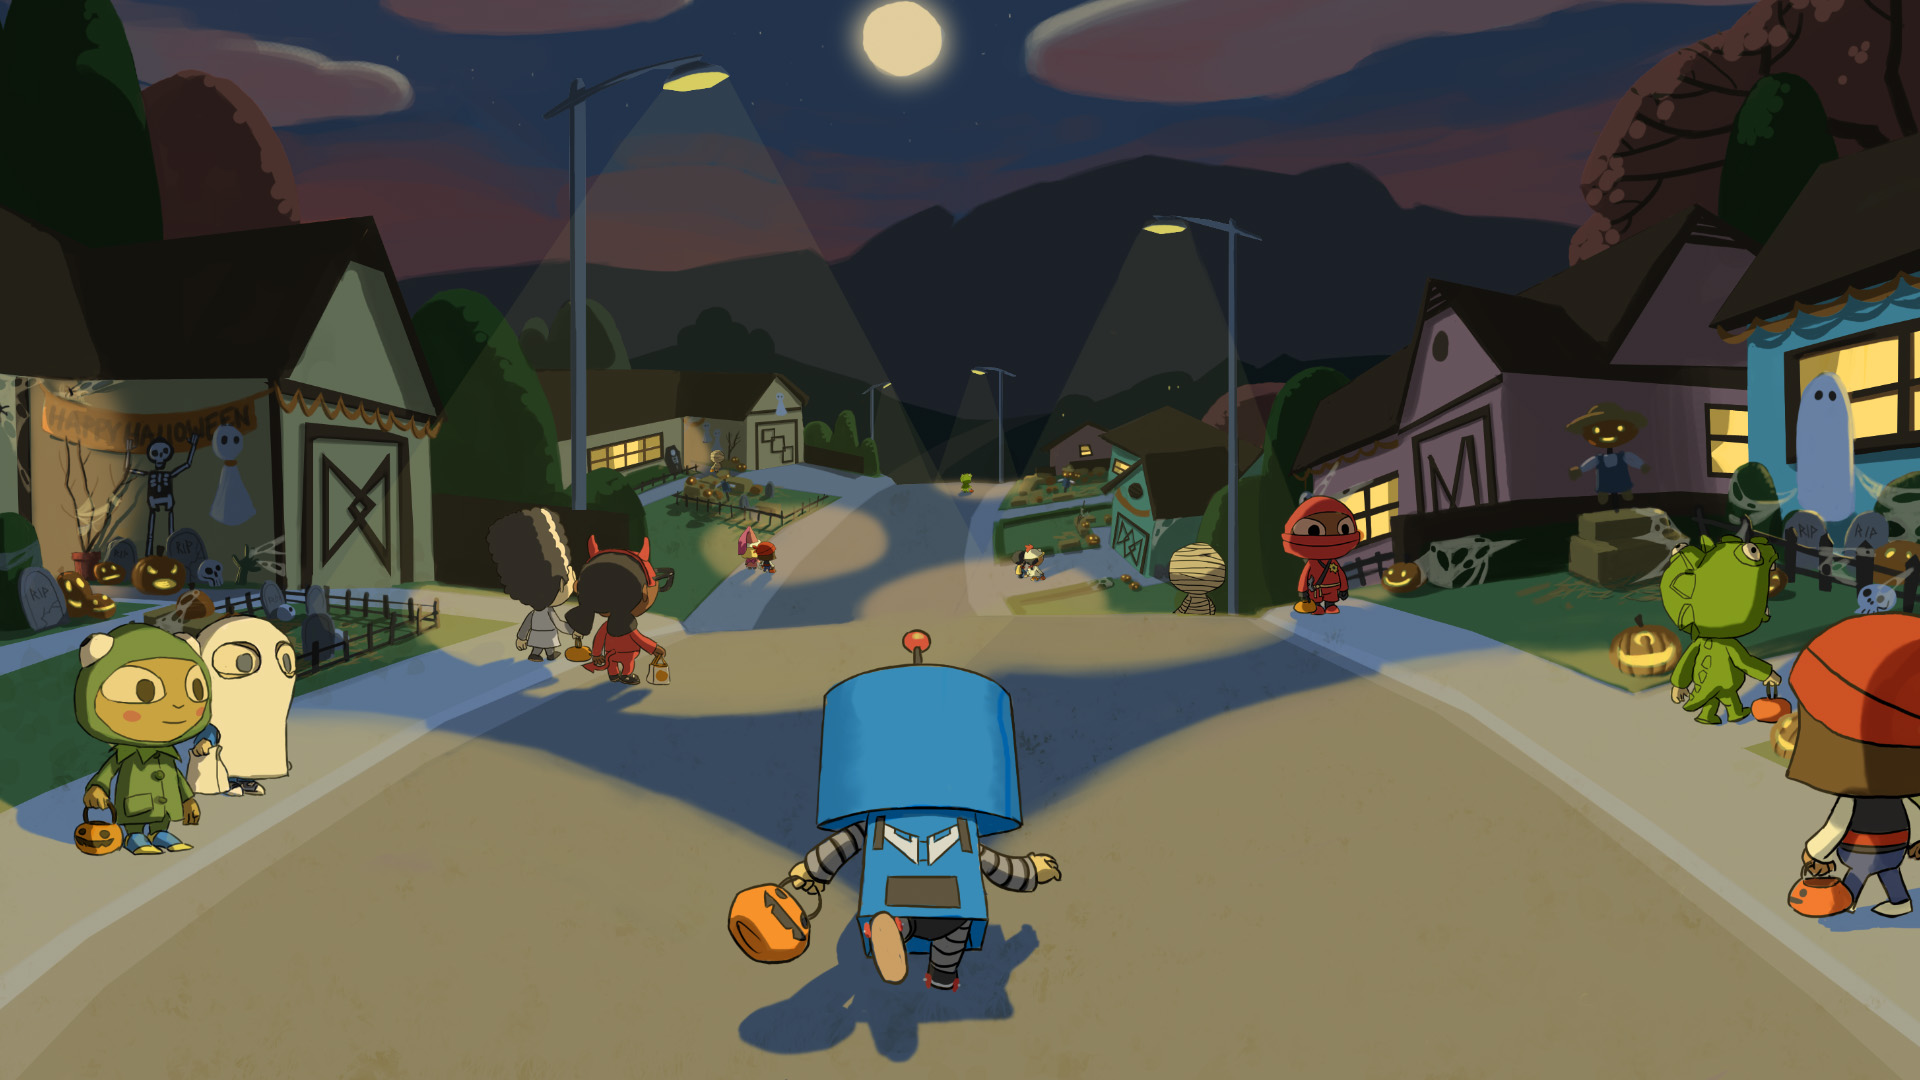 Steam card exchange showcase costume quest card 7 of 9artwork auburn pines malvernweather Image collections